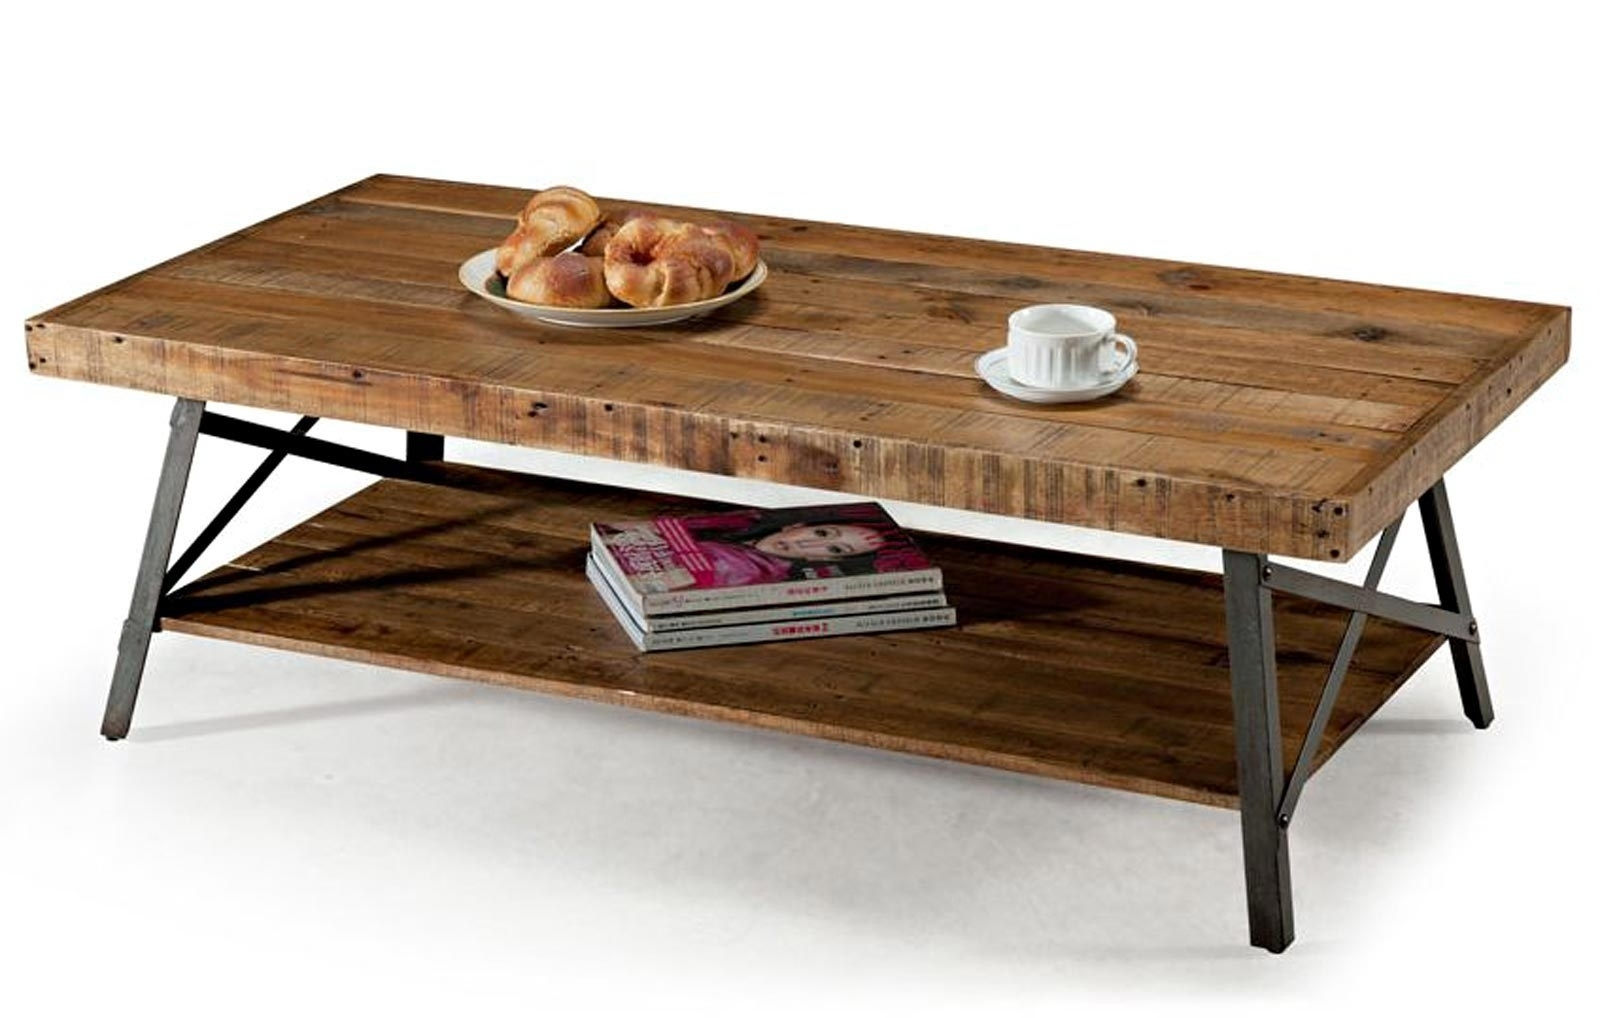 Prepossessing Modern Rustic Coffee Table Laundry Room Concept In for Modern Rustic Coffee Tables (Image 21 of 30)